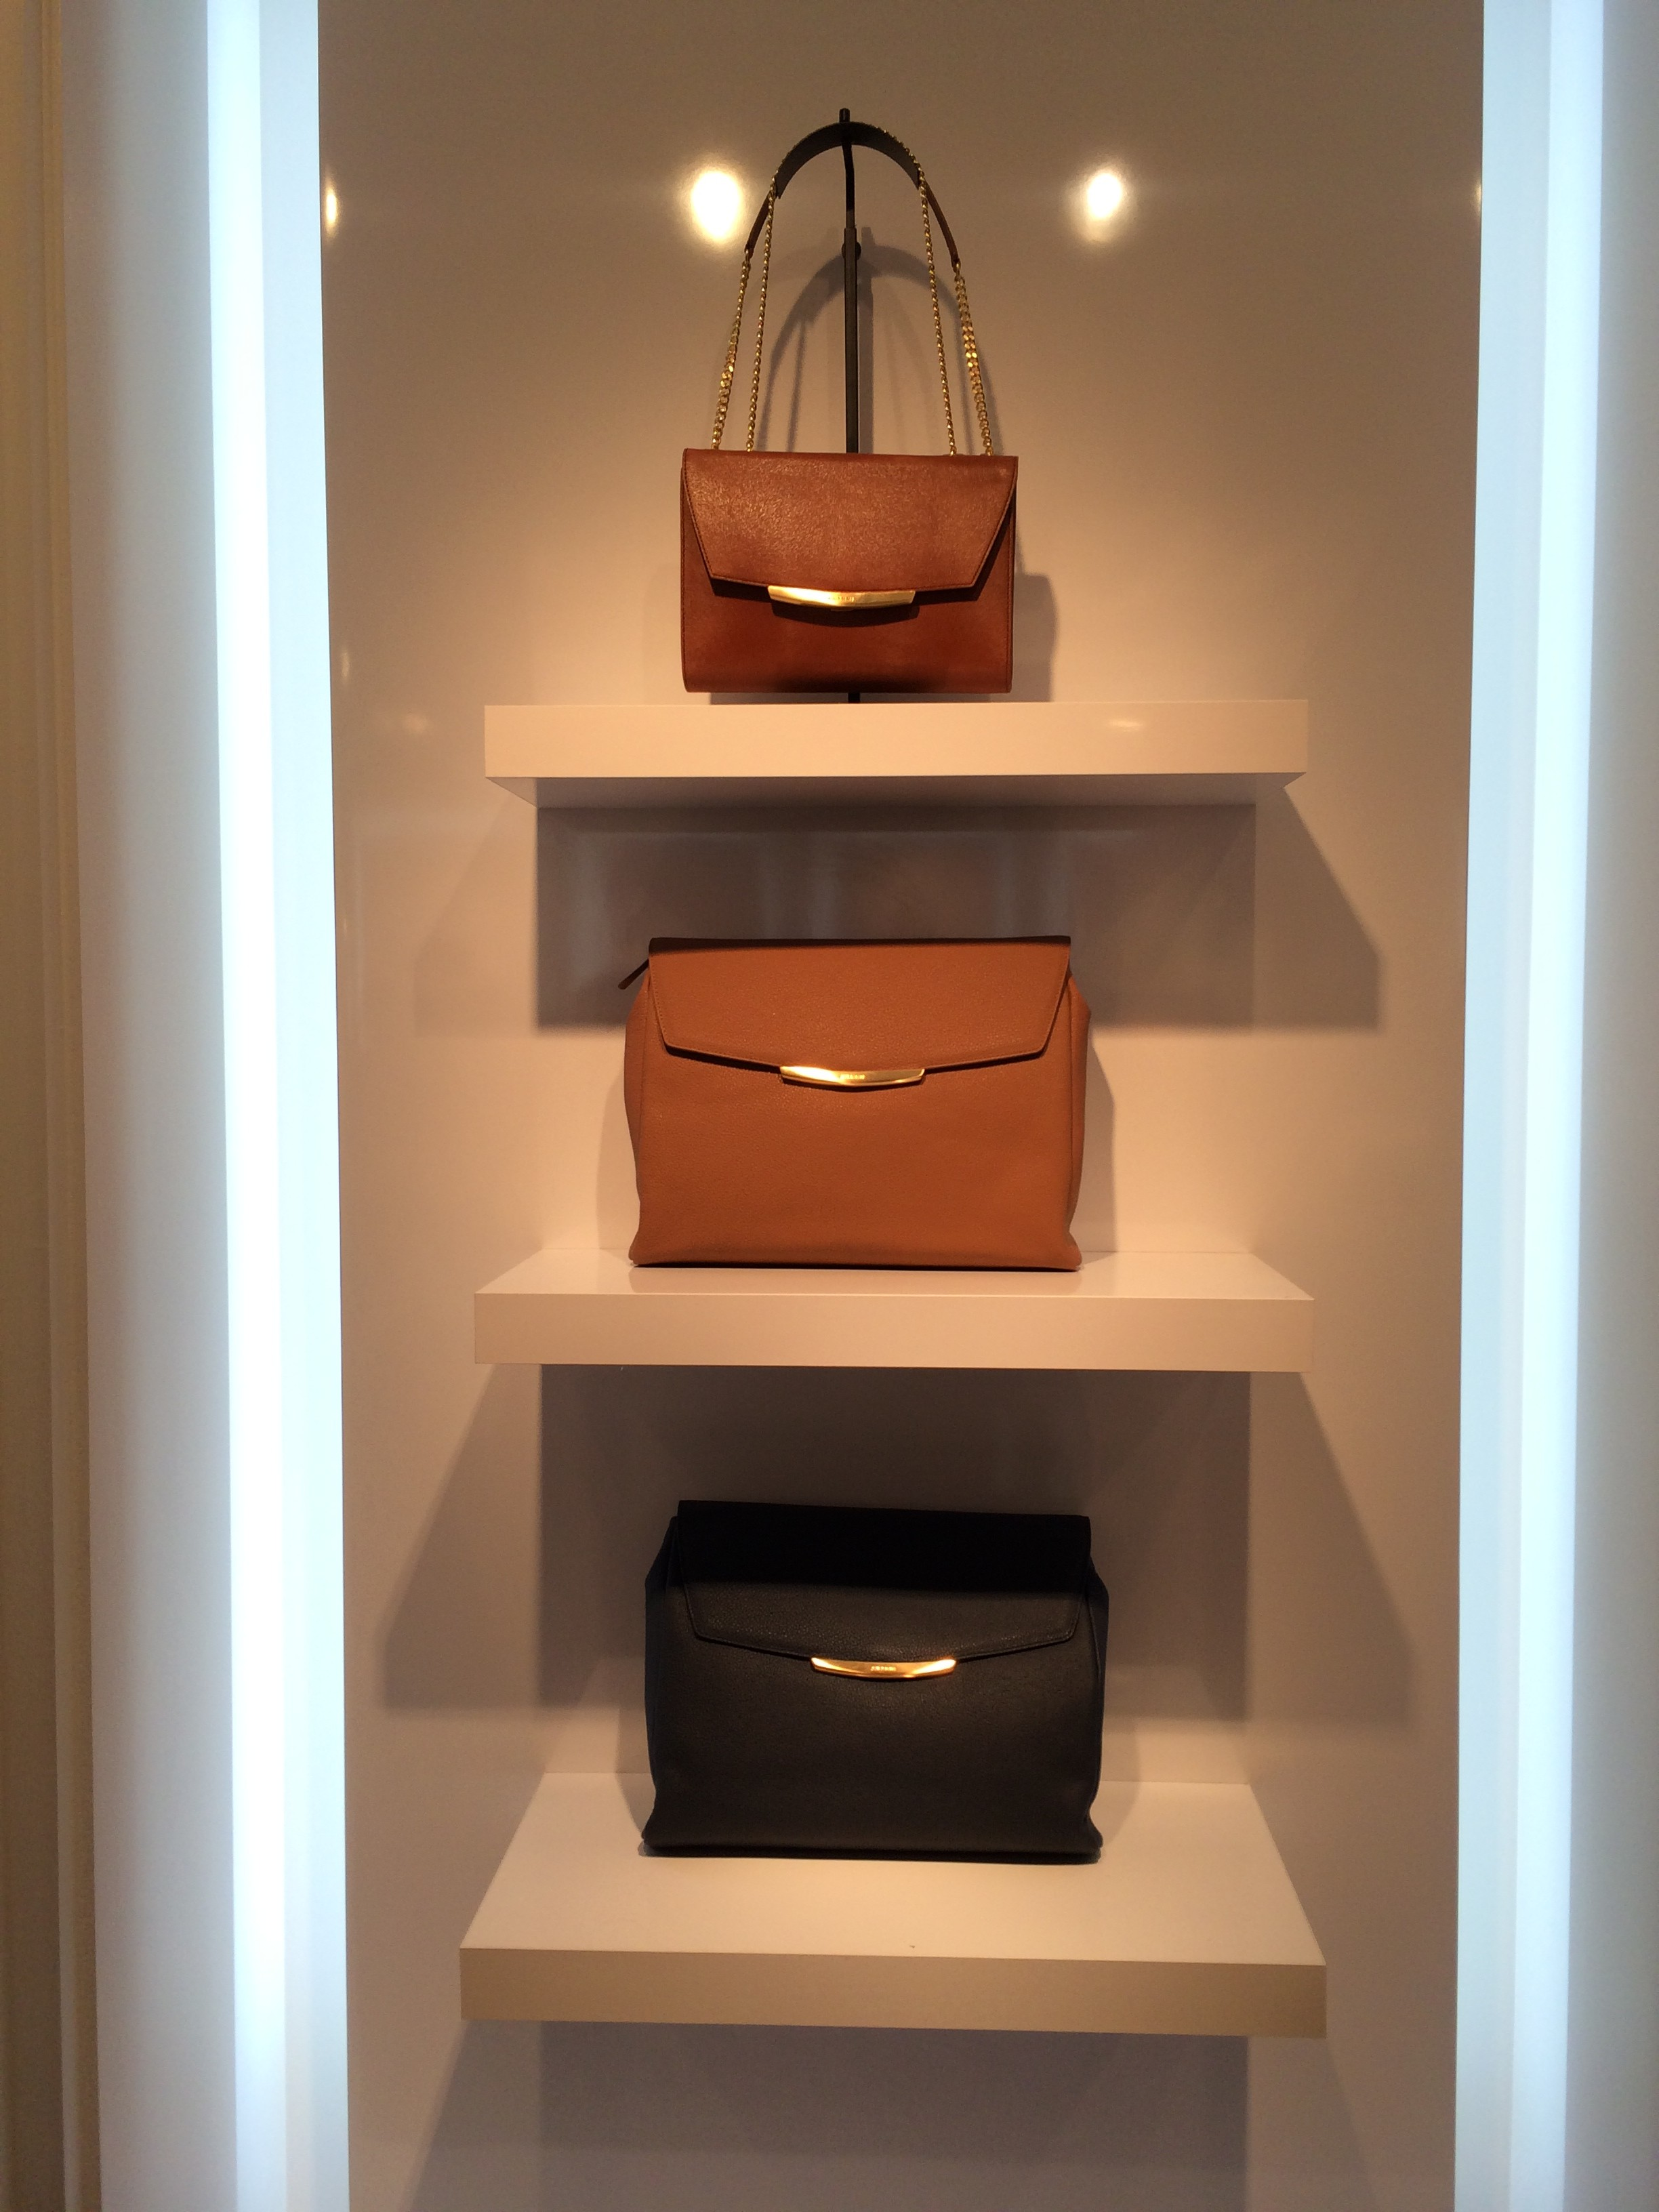 Jinammi LA Store Opening - bag shelf